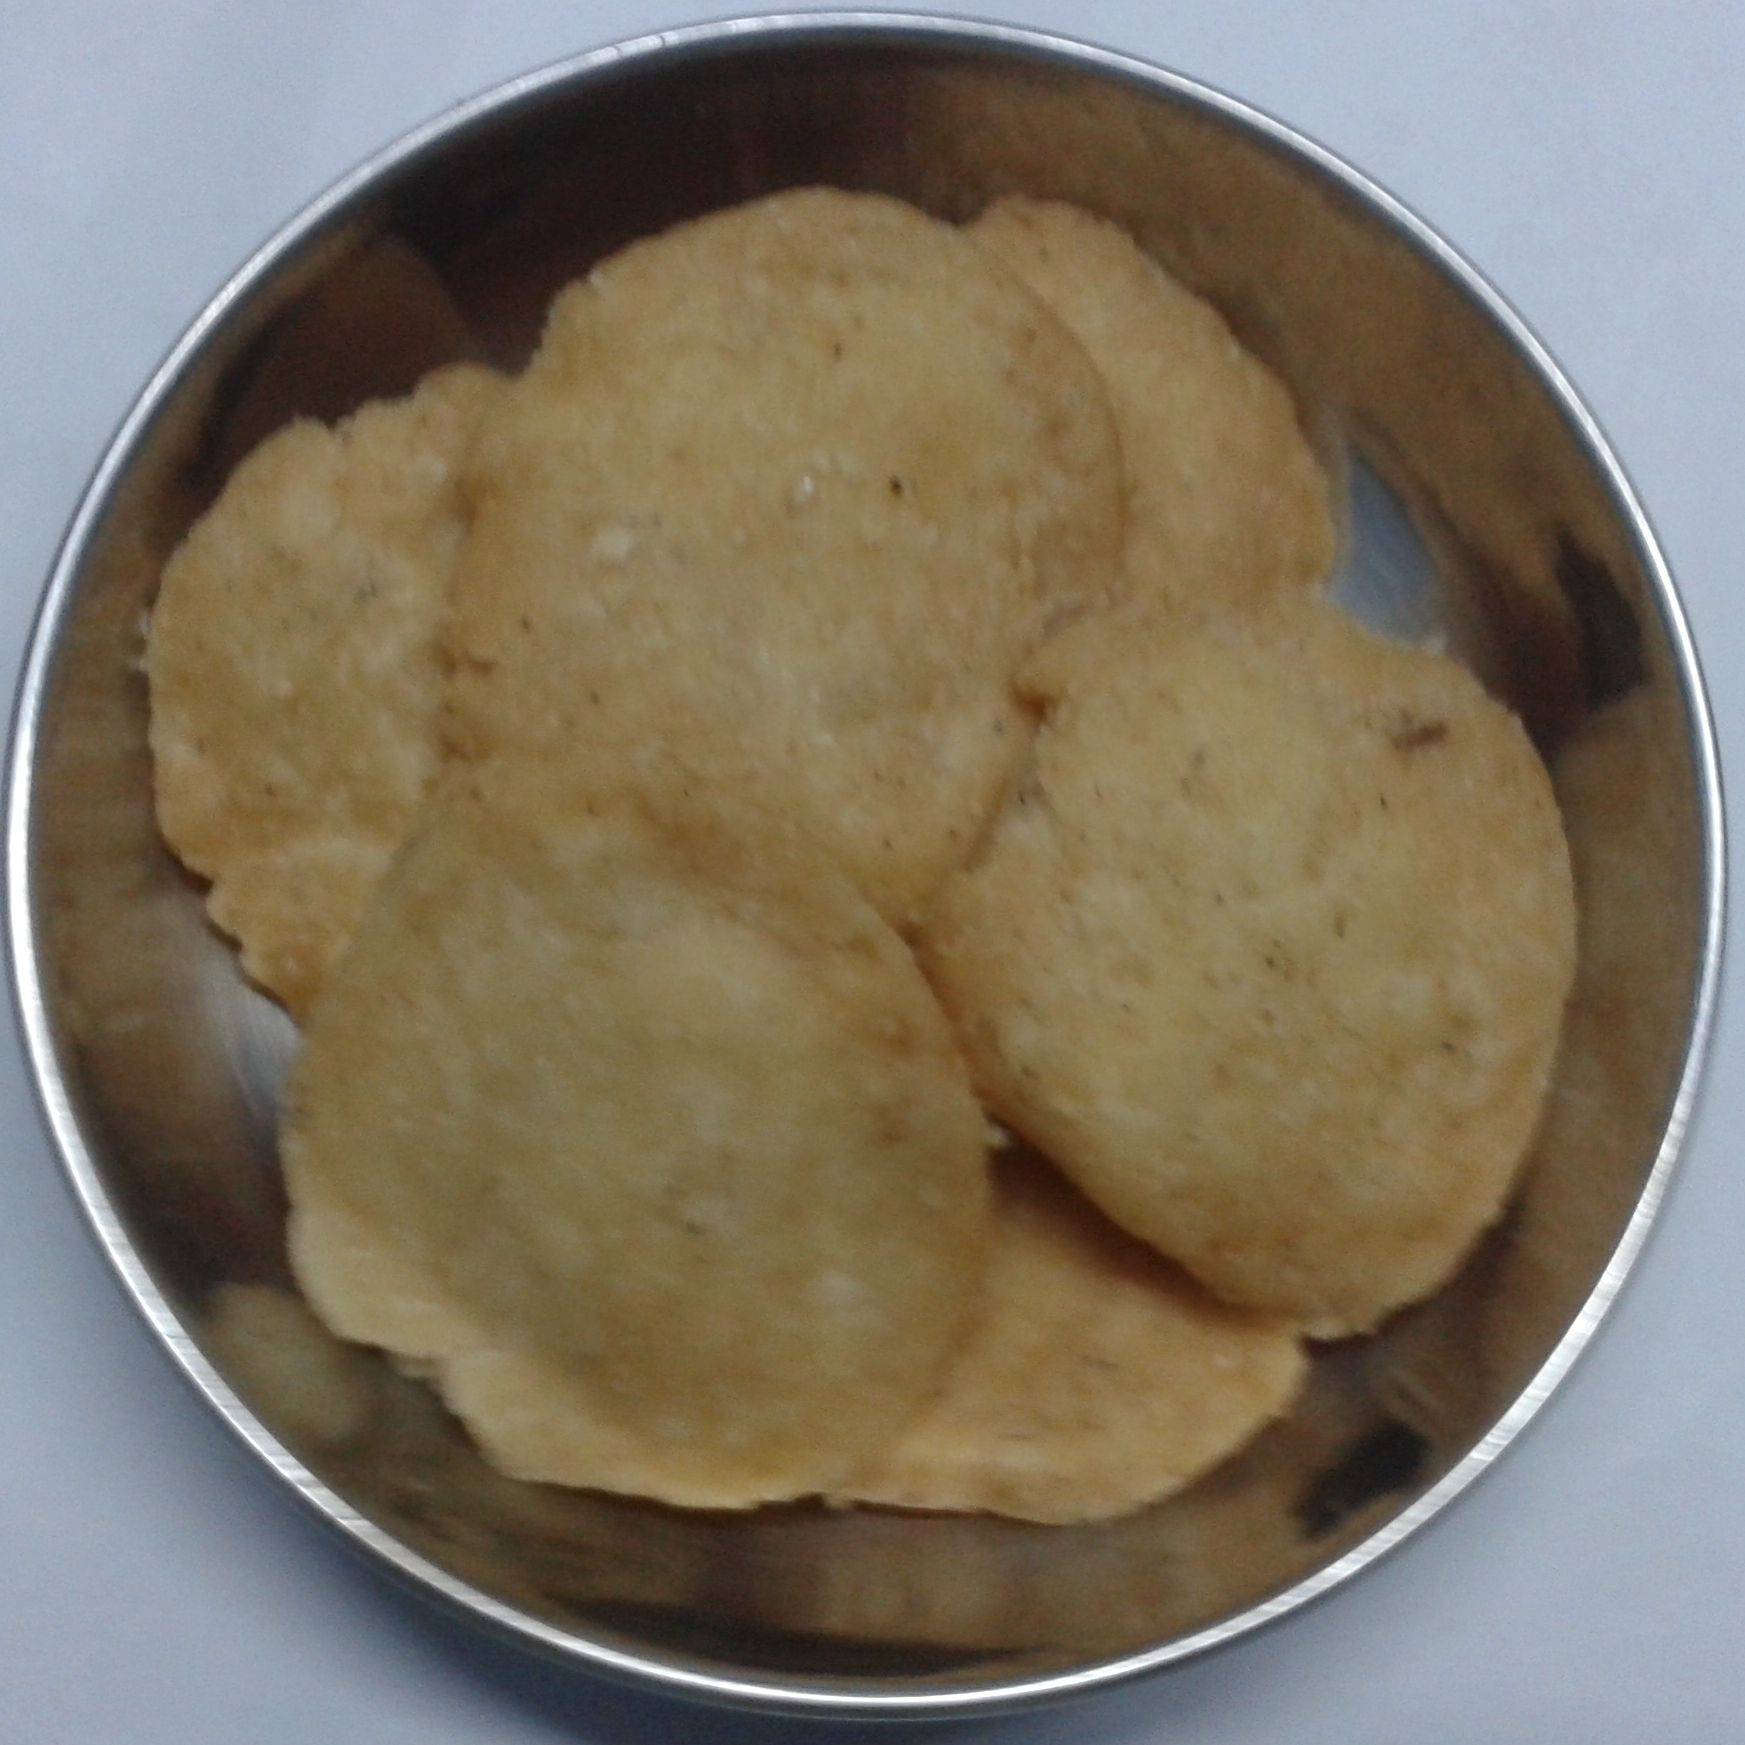 Farsi puri recipe in gujarati language by tasty gujarati food blog farsi puri recipe in gujarati language by tasty gujarati food blog enjoy crispy farsi maida forumfinder Images